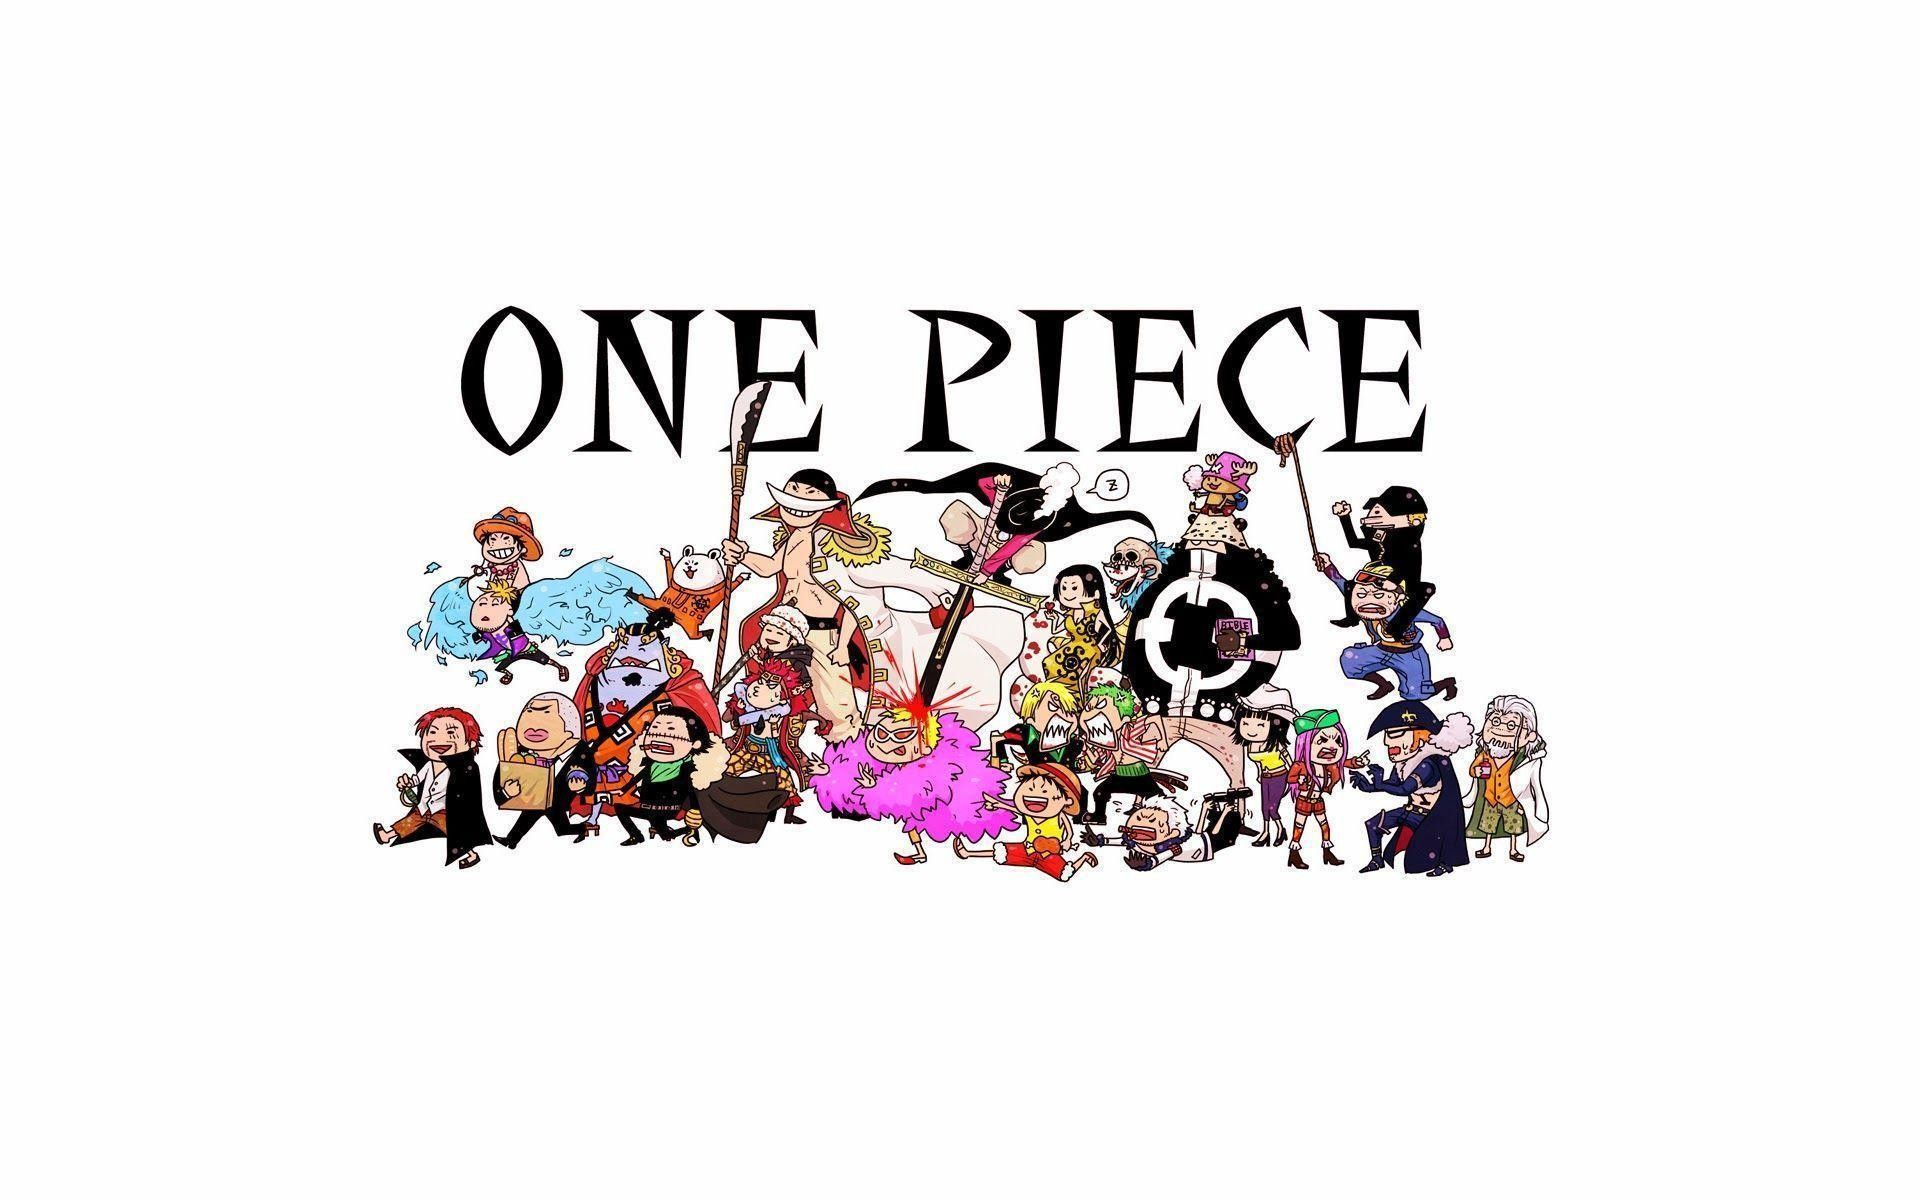 1920x1200 One Piece Anime Chibi 27 HD Wallpaper